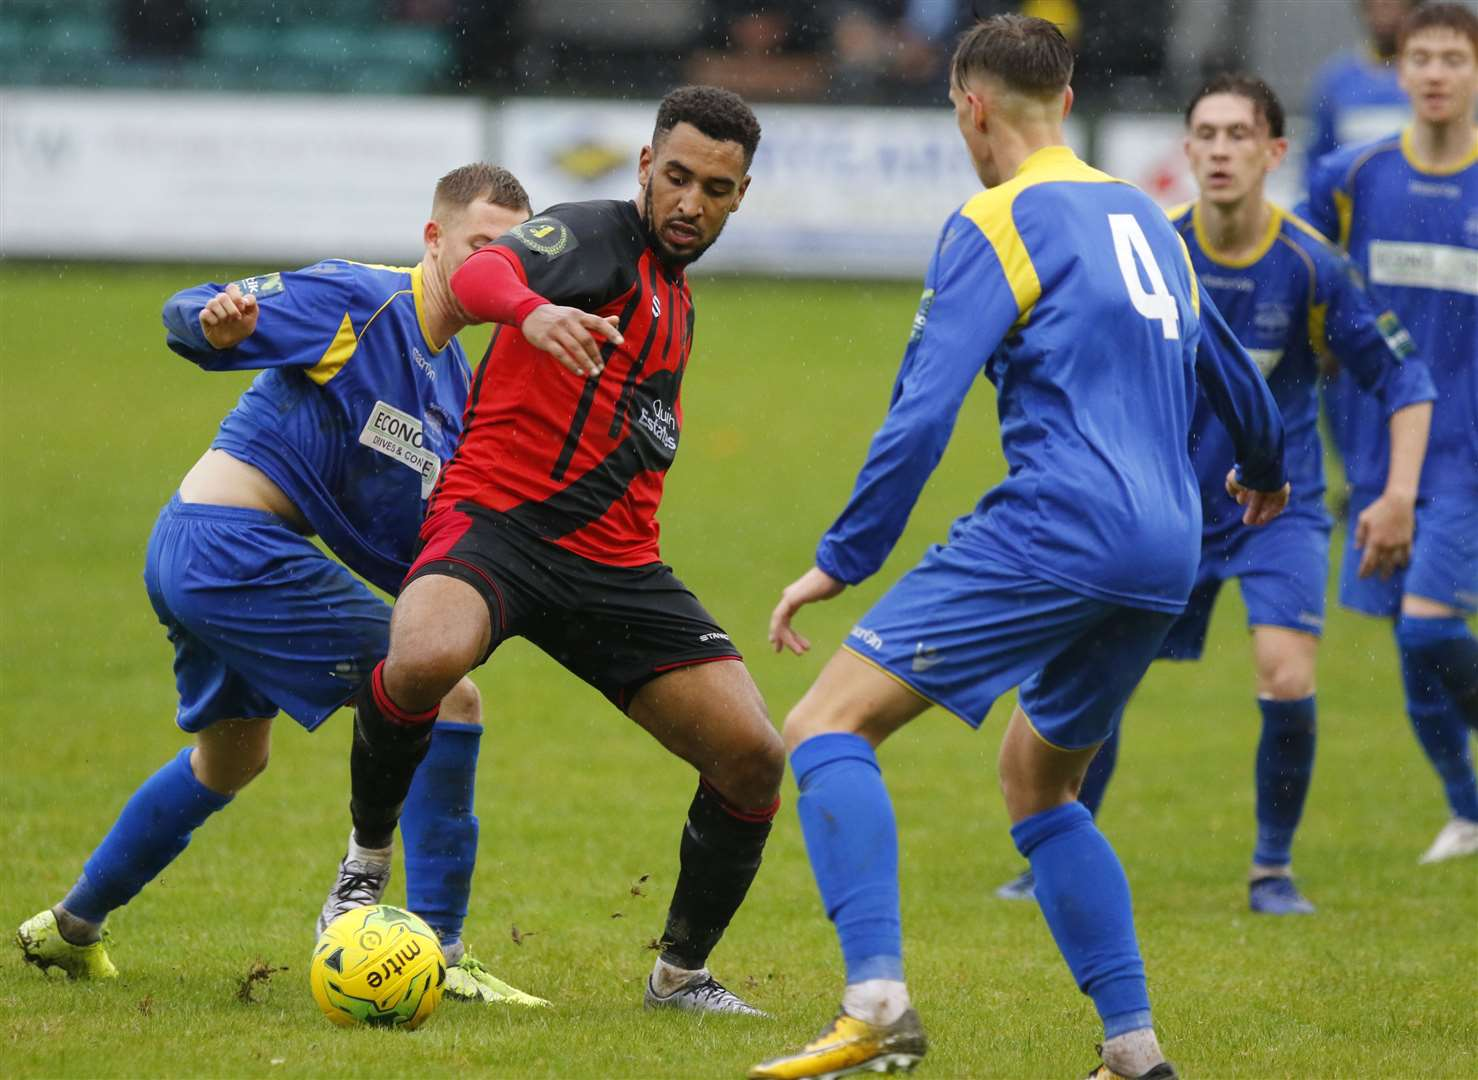 Sittingbourne (red) take on South Park in last season's FA Vase competition. Picture: Andy Jones